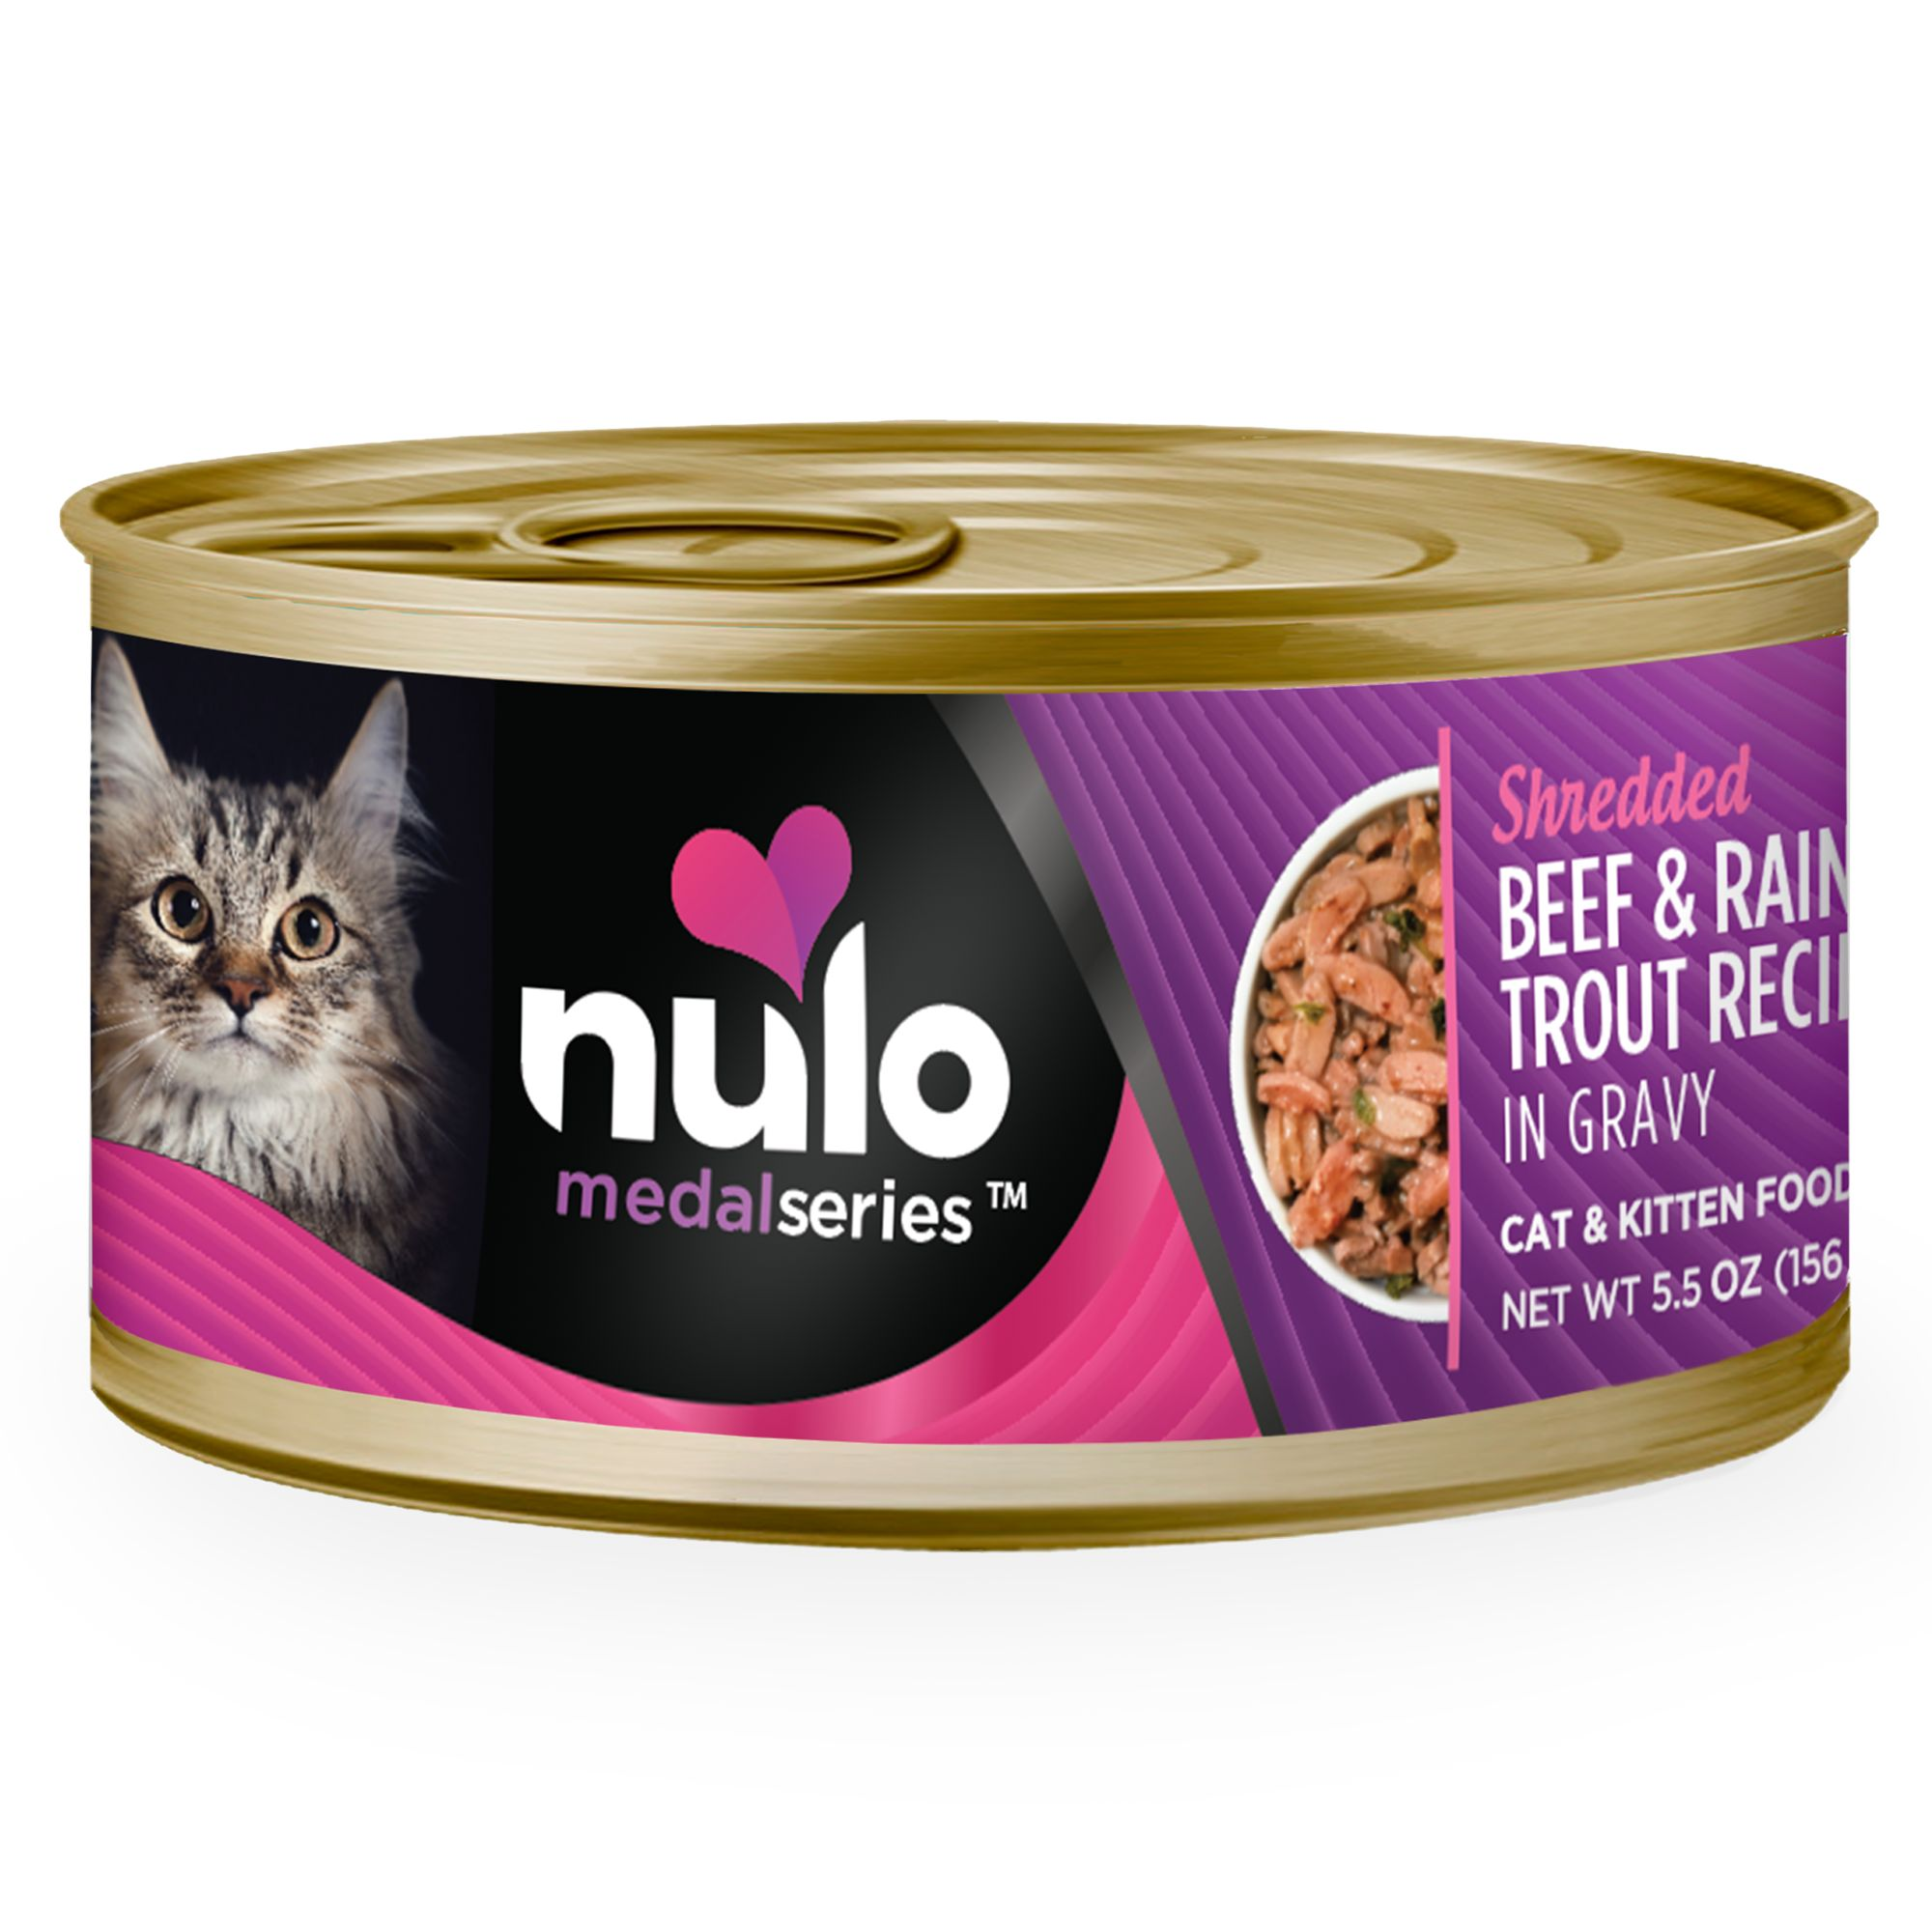 Nulo Medalseries Cat And Kitten Food Grain Free Beef And Rainbow Trout Size 3 Oz